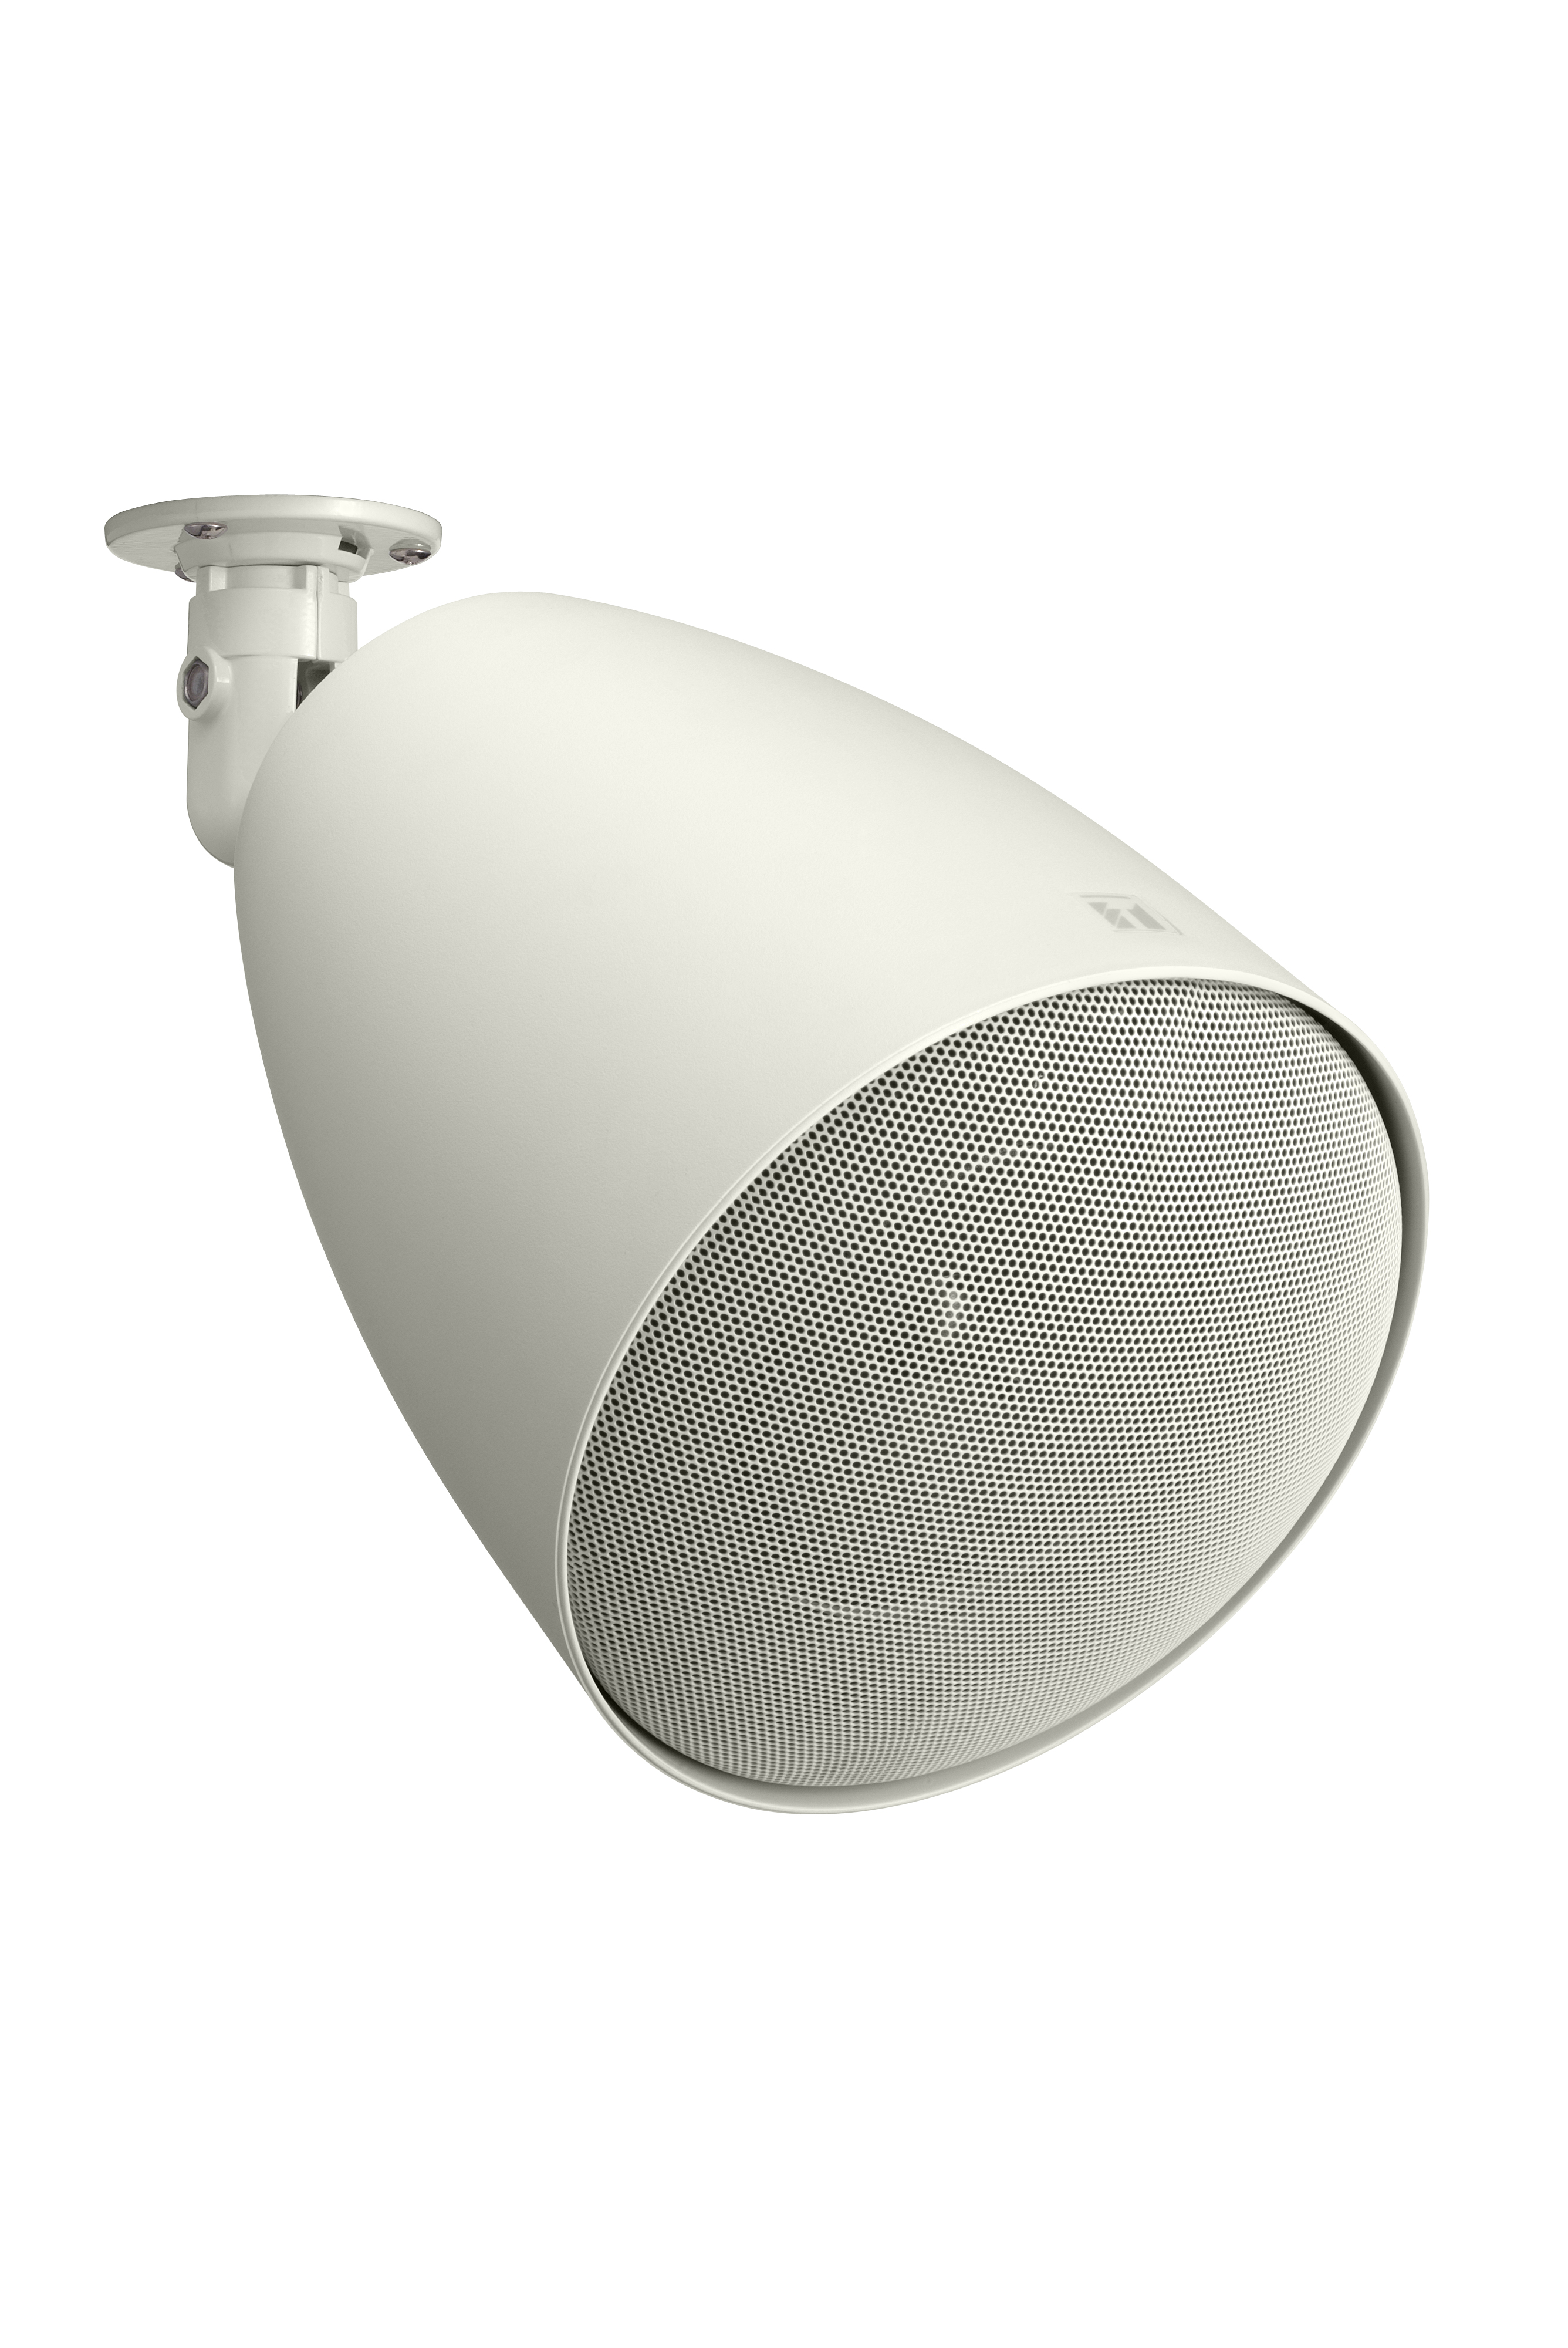 pa speakers projection and pendant speakers pj 304